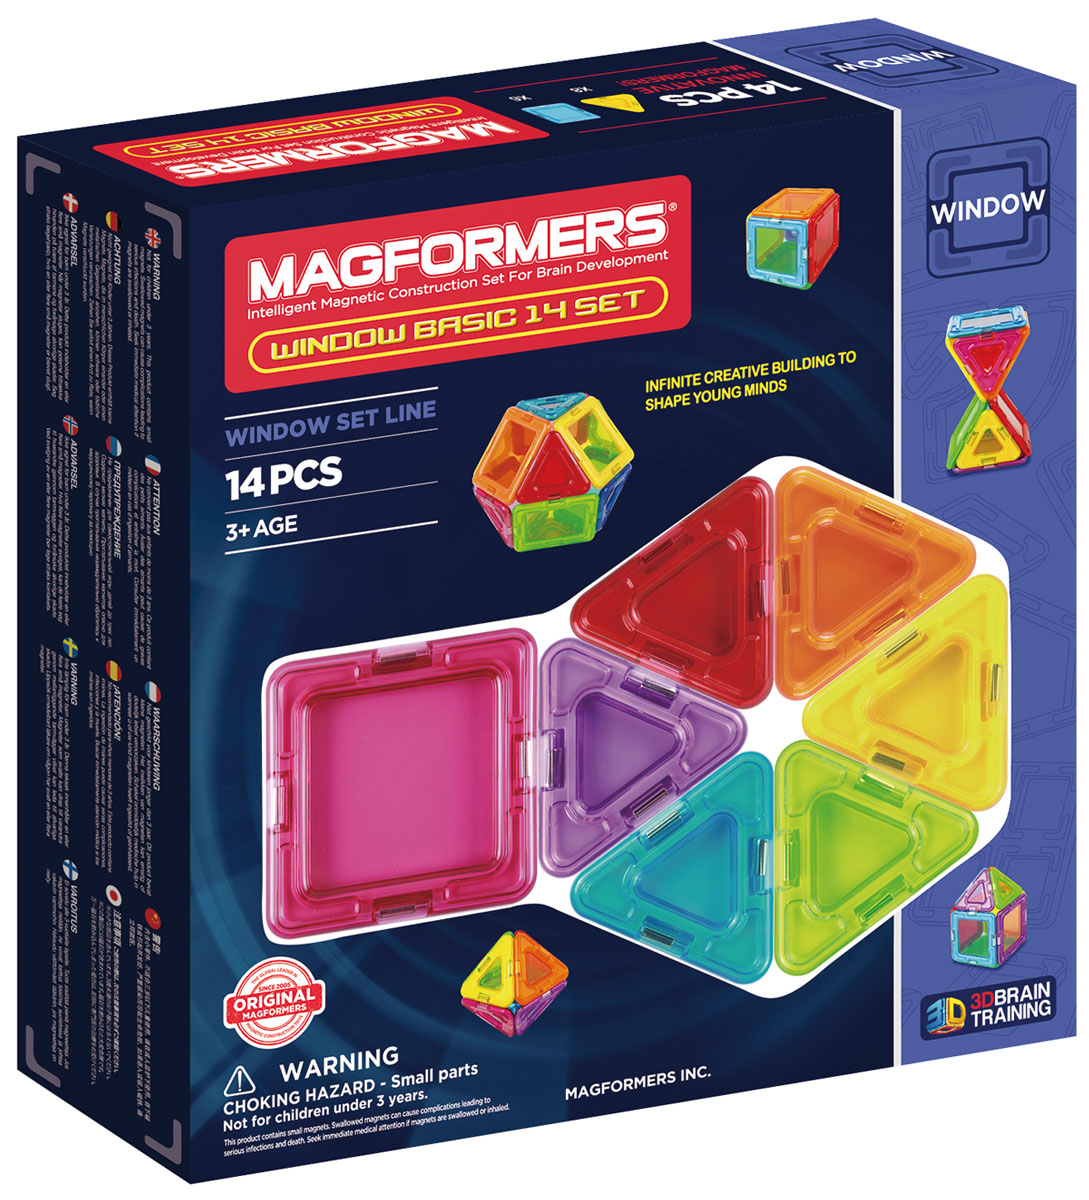 Magformers Магнитный конструктор Window Basic 14 Set magformers window basic 14 set 714001